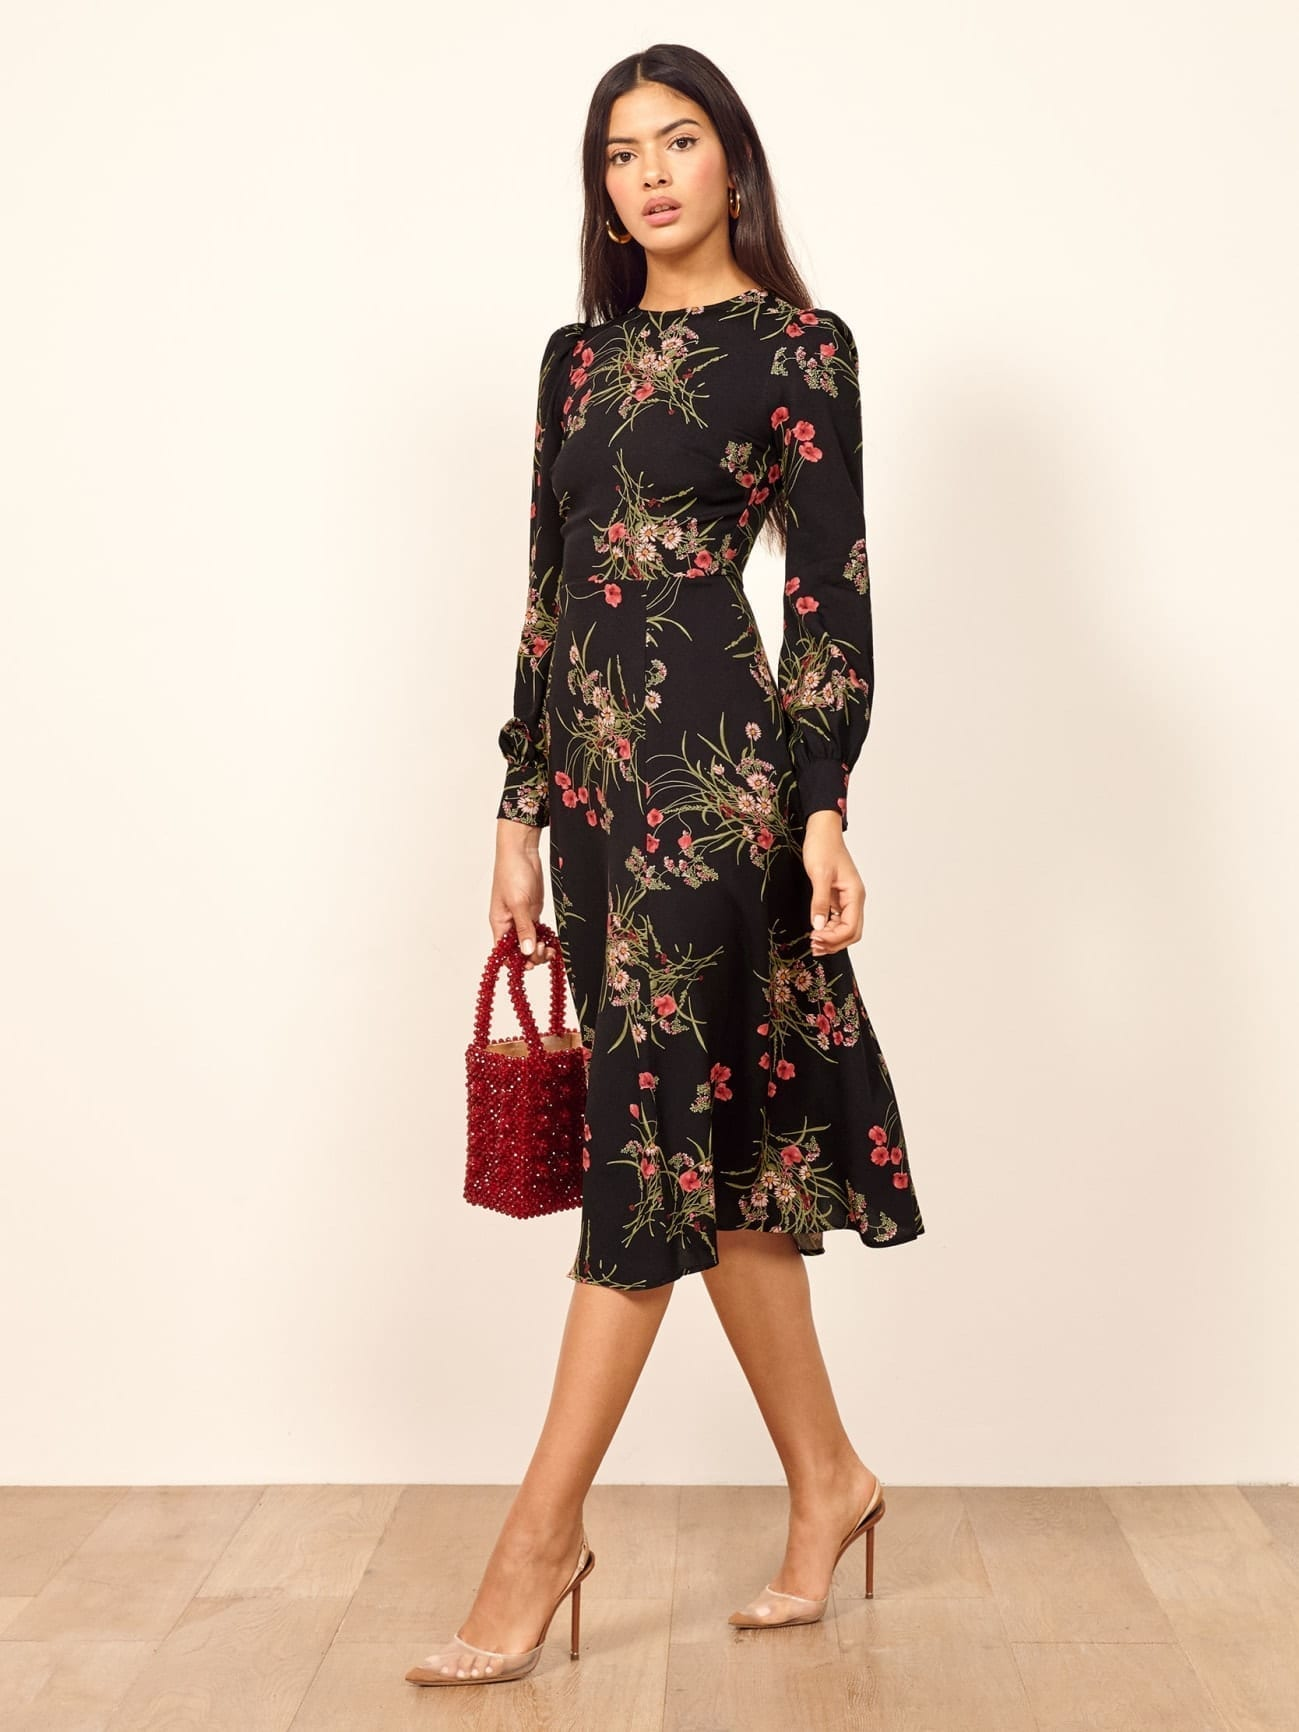 ade3920fda2f9 REFORMATION Josephine Black / Floral Printed Dress - We Select Dresses